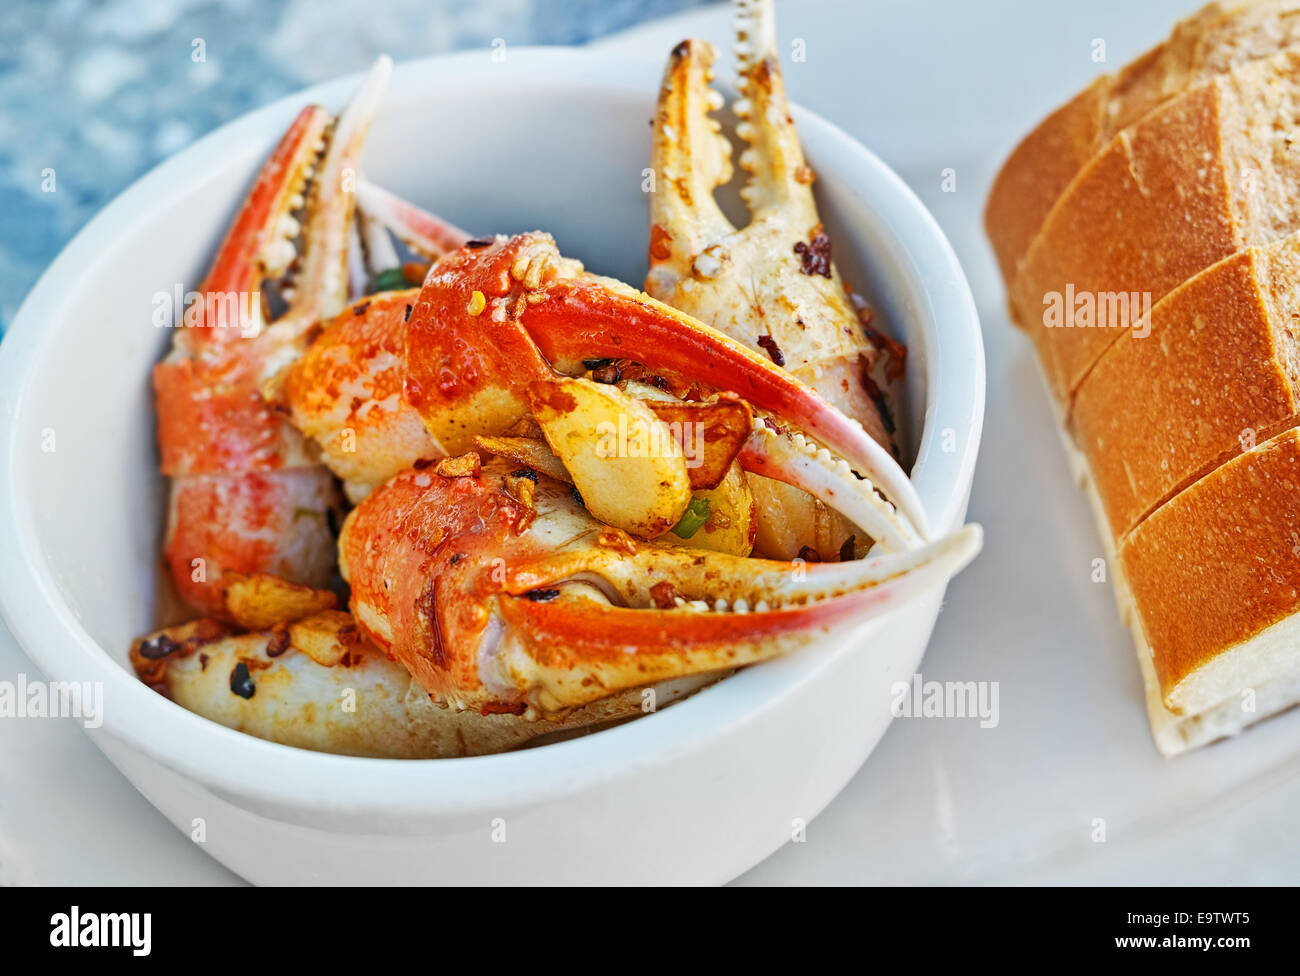 Fresh Lobster Claws from Florida suffused with garlic and spices, served with bread - Stock Image